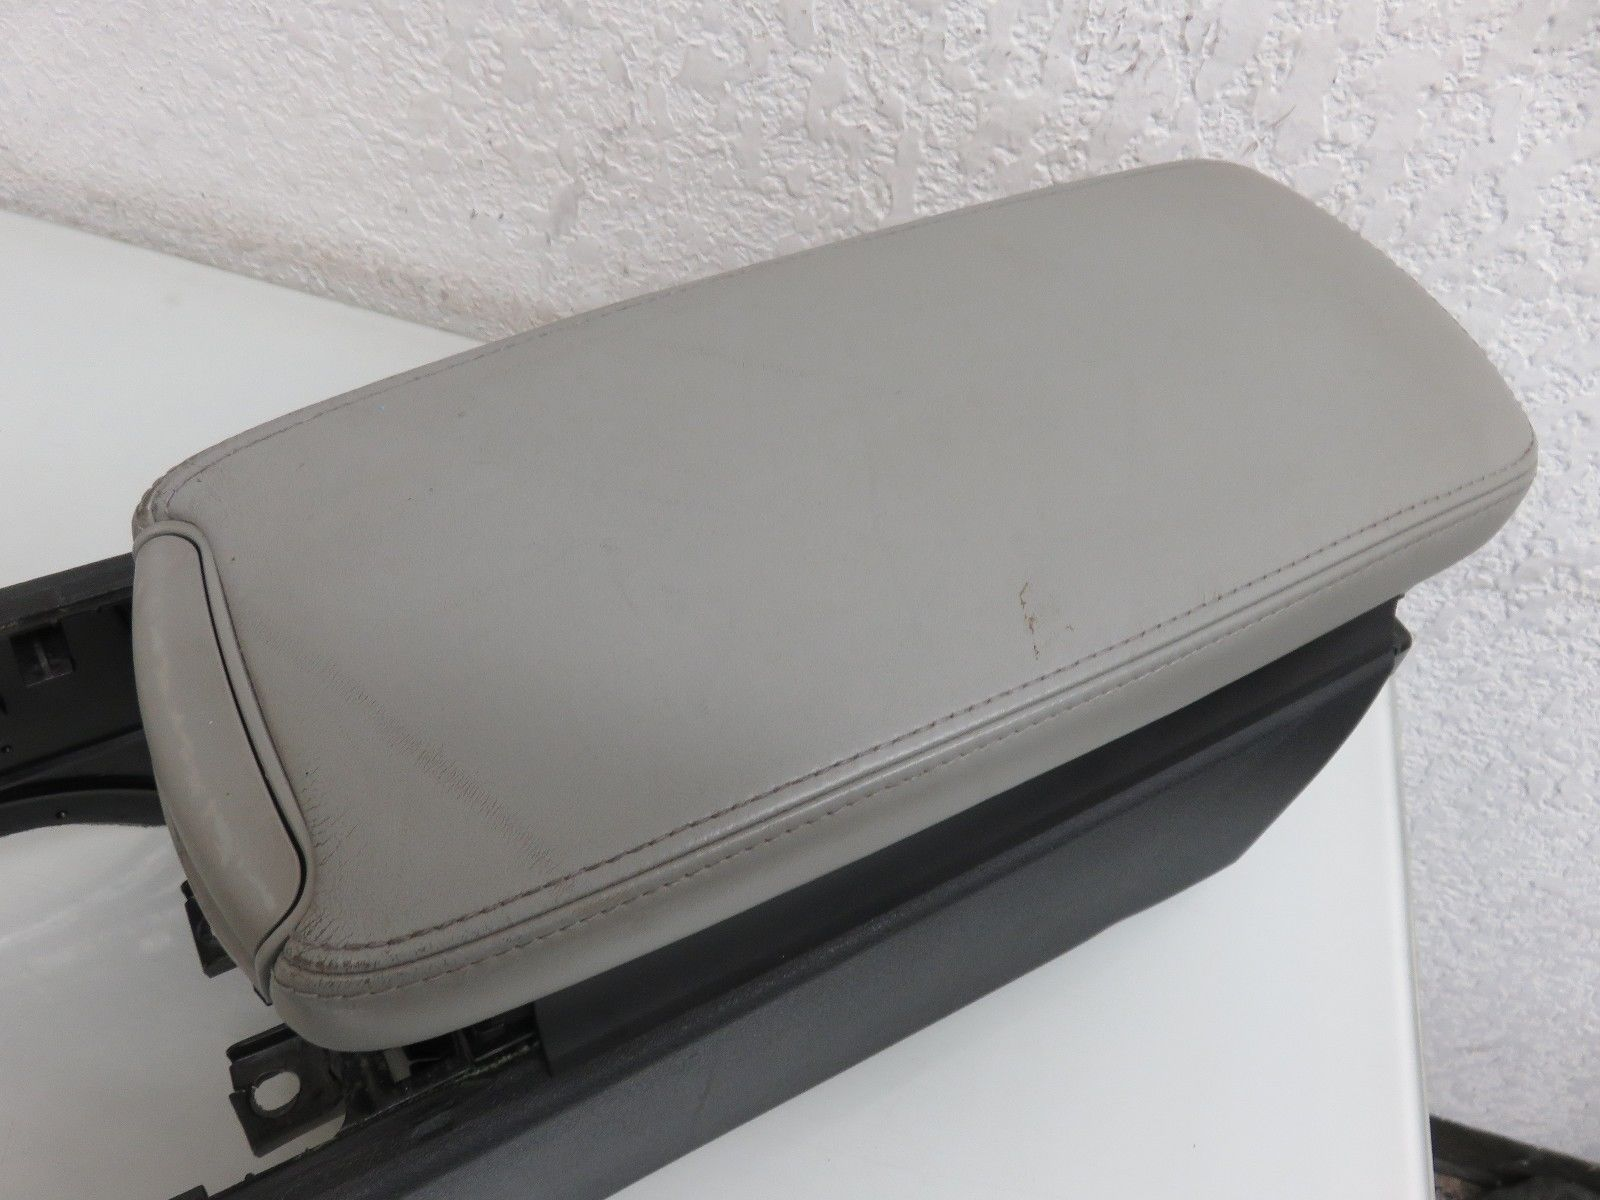 2006 LEXUS IS250 FRONT CENTER CONSOLE ARMREST CUP HOLDER STORAGE TRAY GREY  OEM